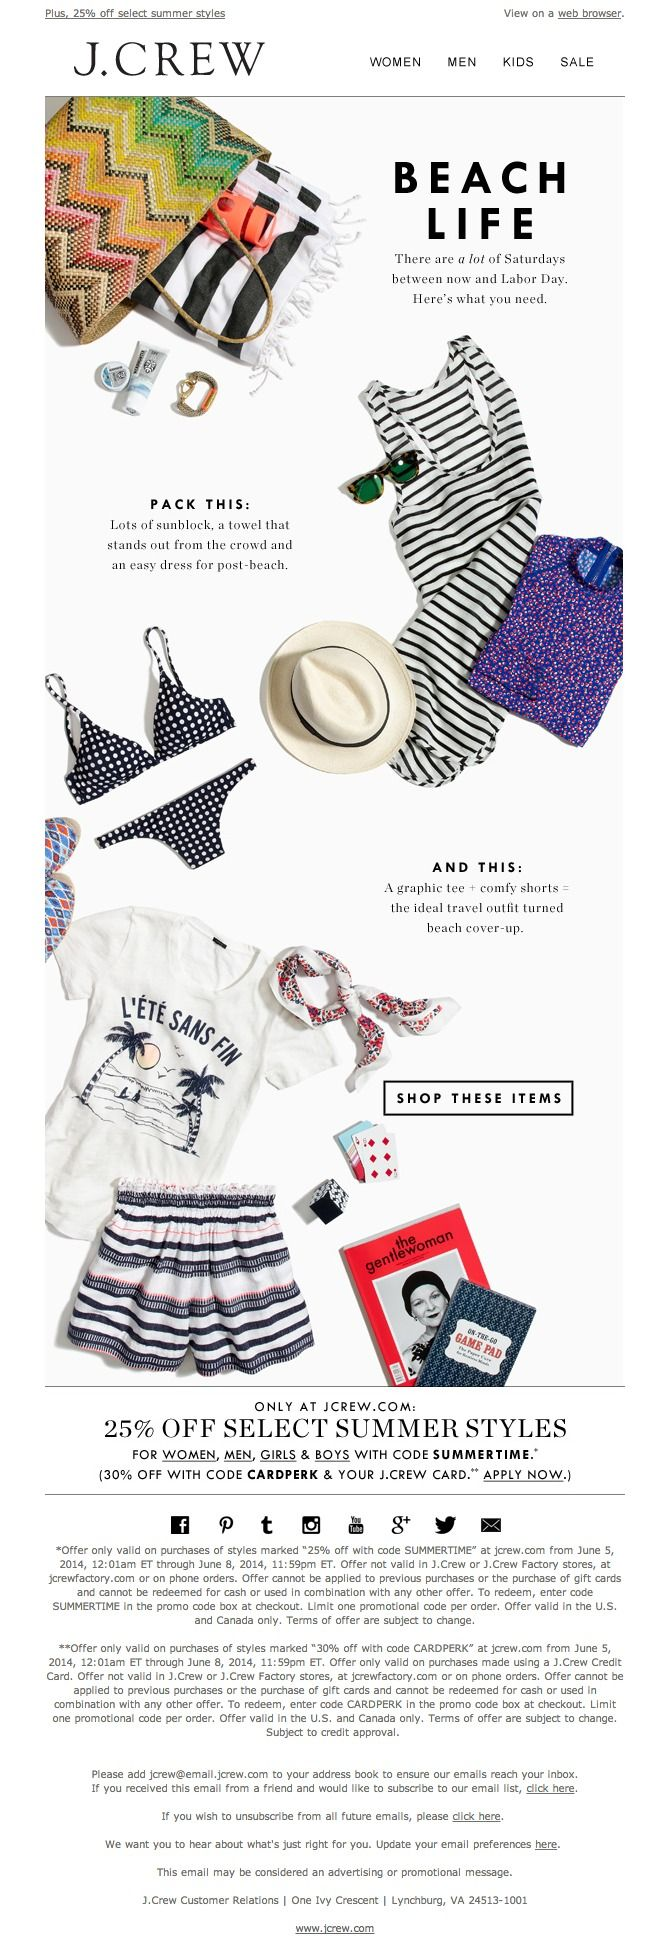 95 best w o r k images on pinterest editorial design graph design newsletter jew 062014 17 things for your beach bag fandeluxe Gallery